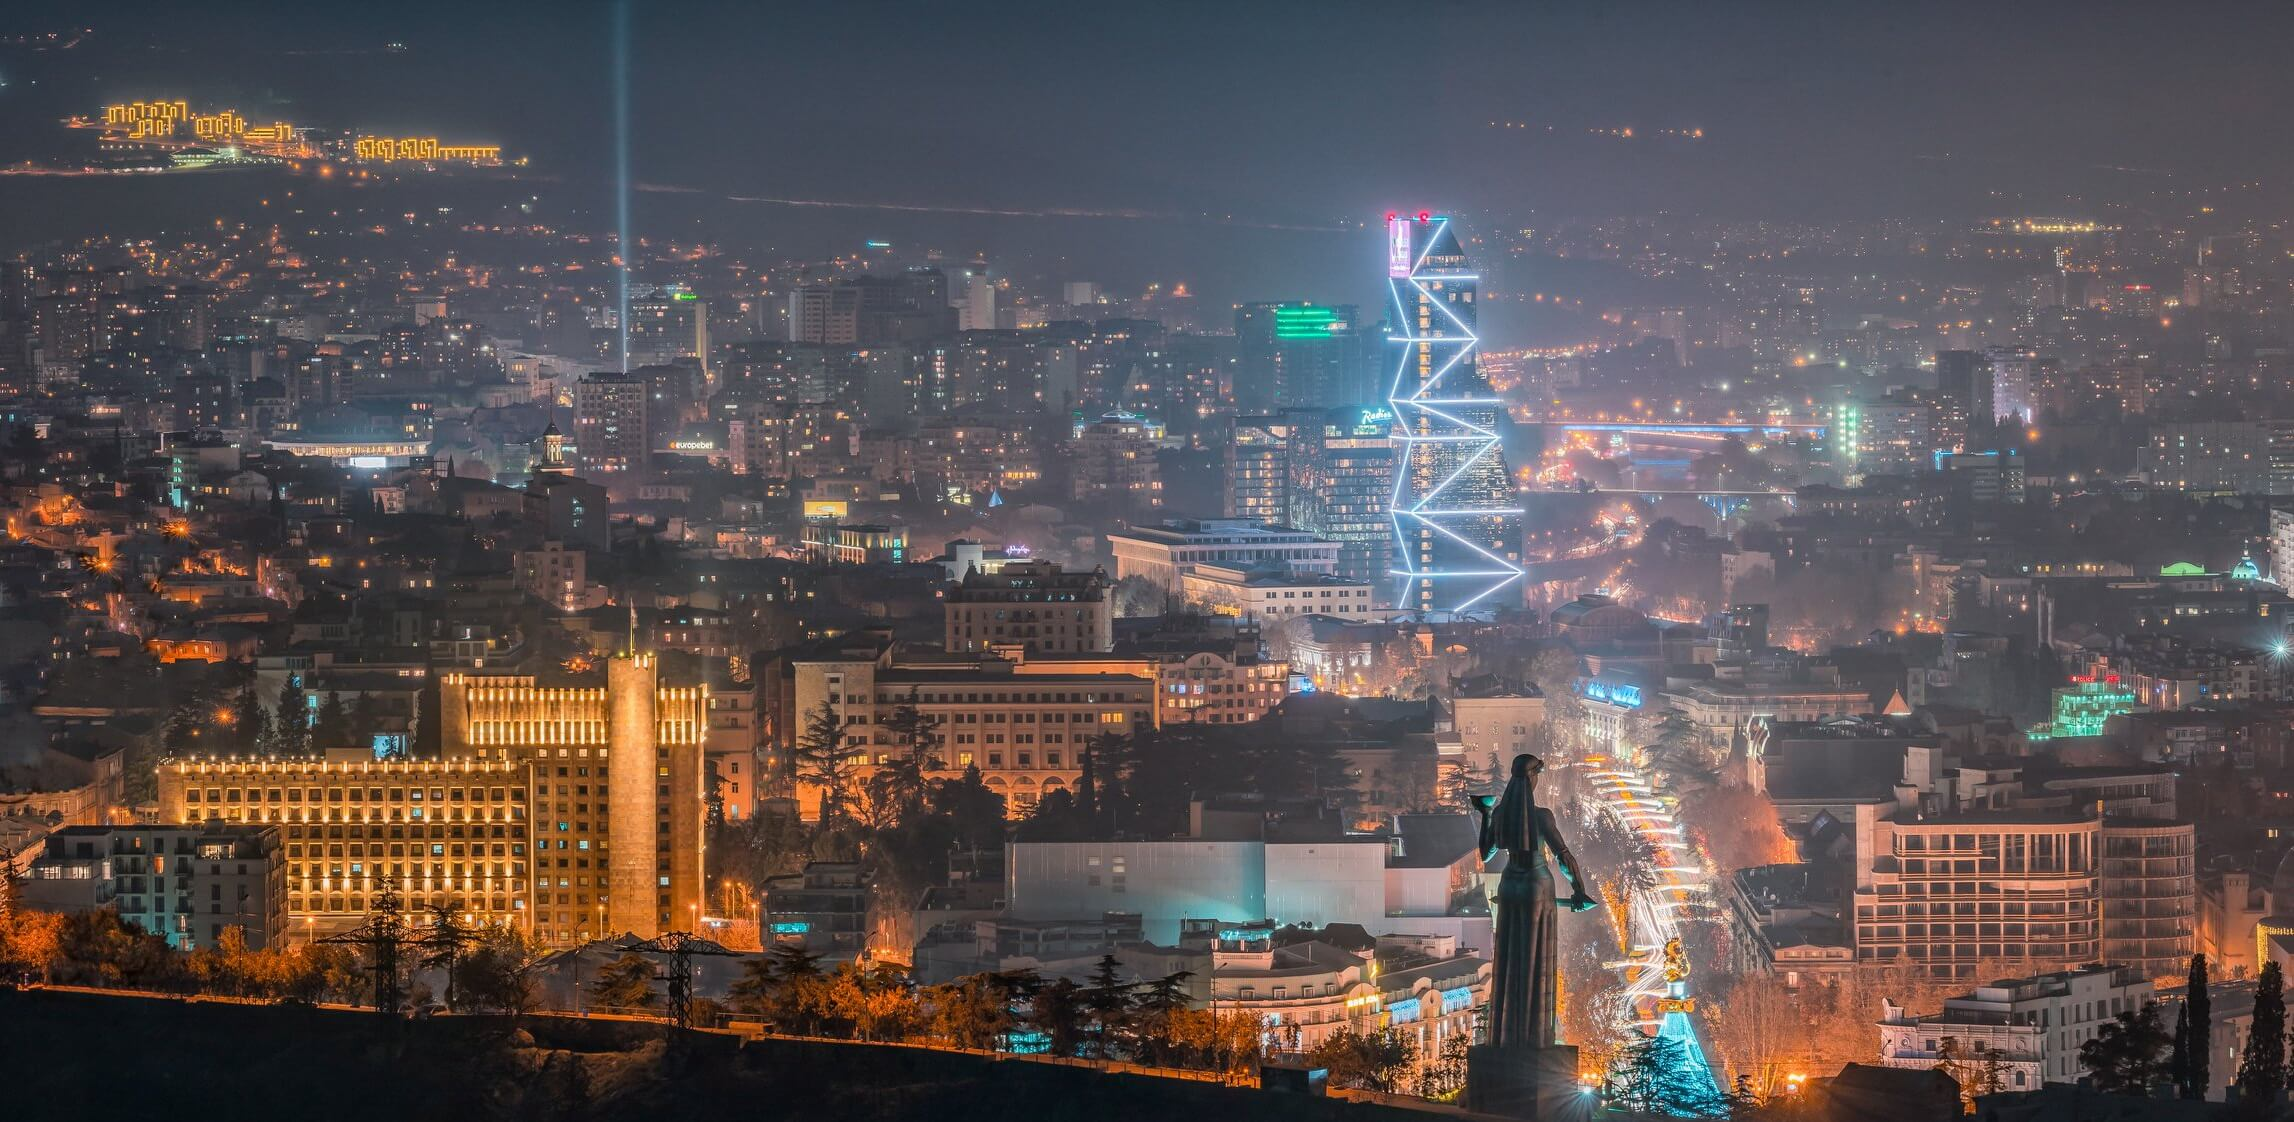 night_tbilisi_light